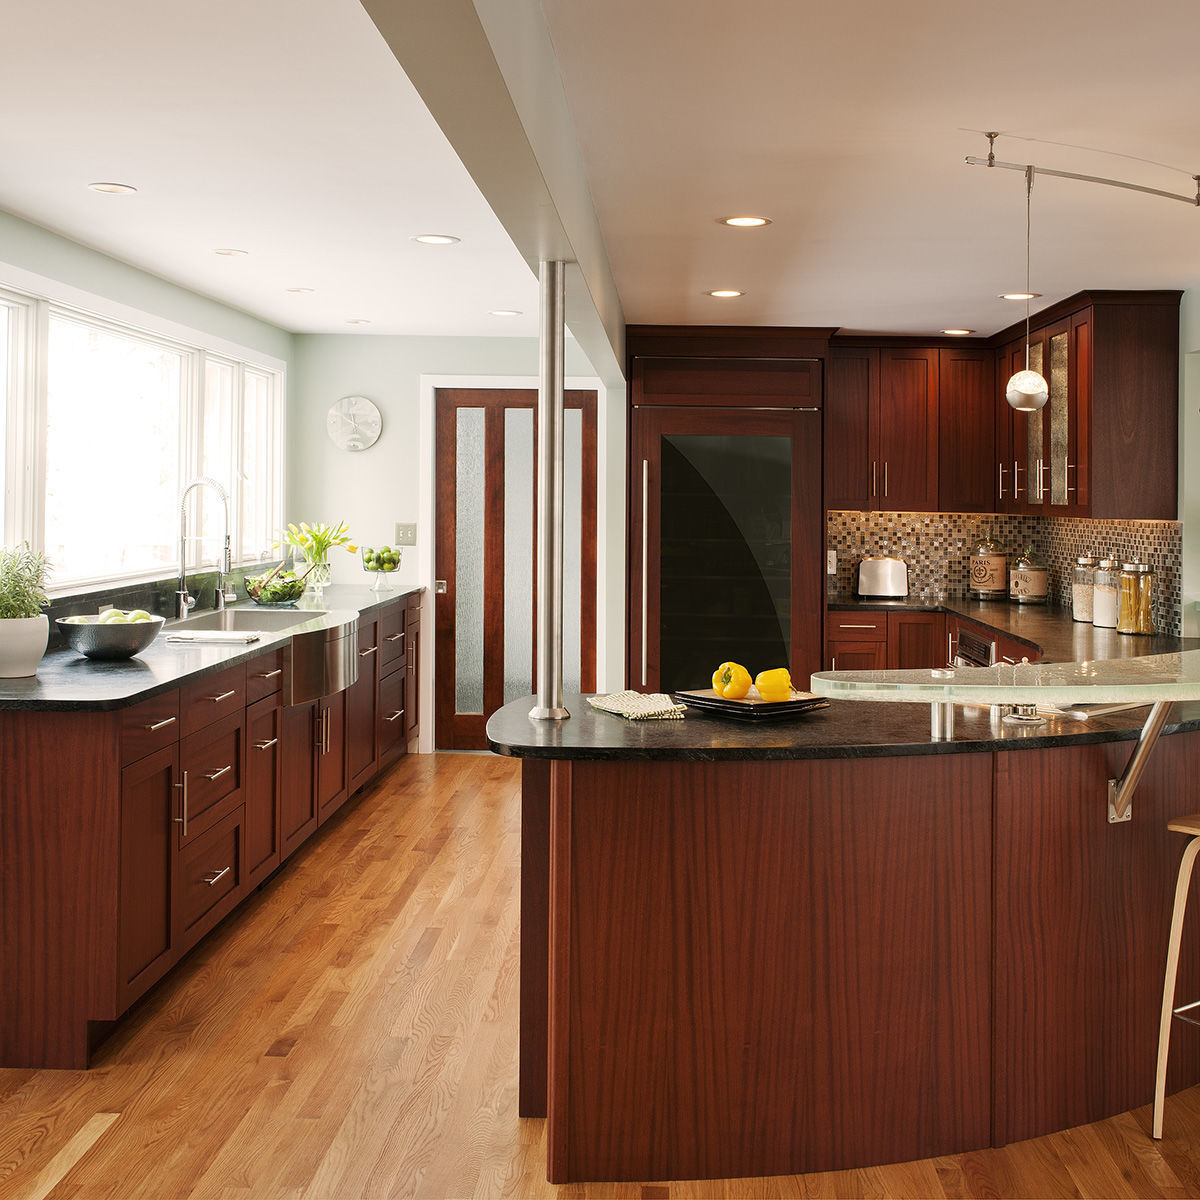 14x14 kitchen designs kitchen designs 12x12 kitchen for Kitchen design 14x14